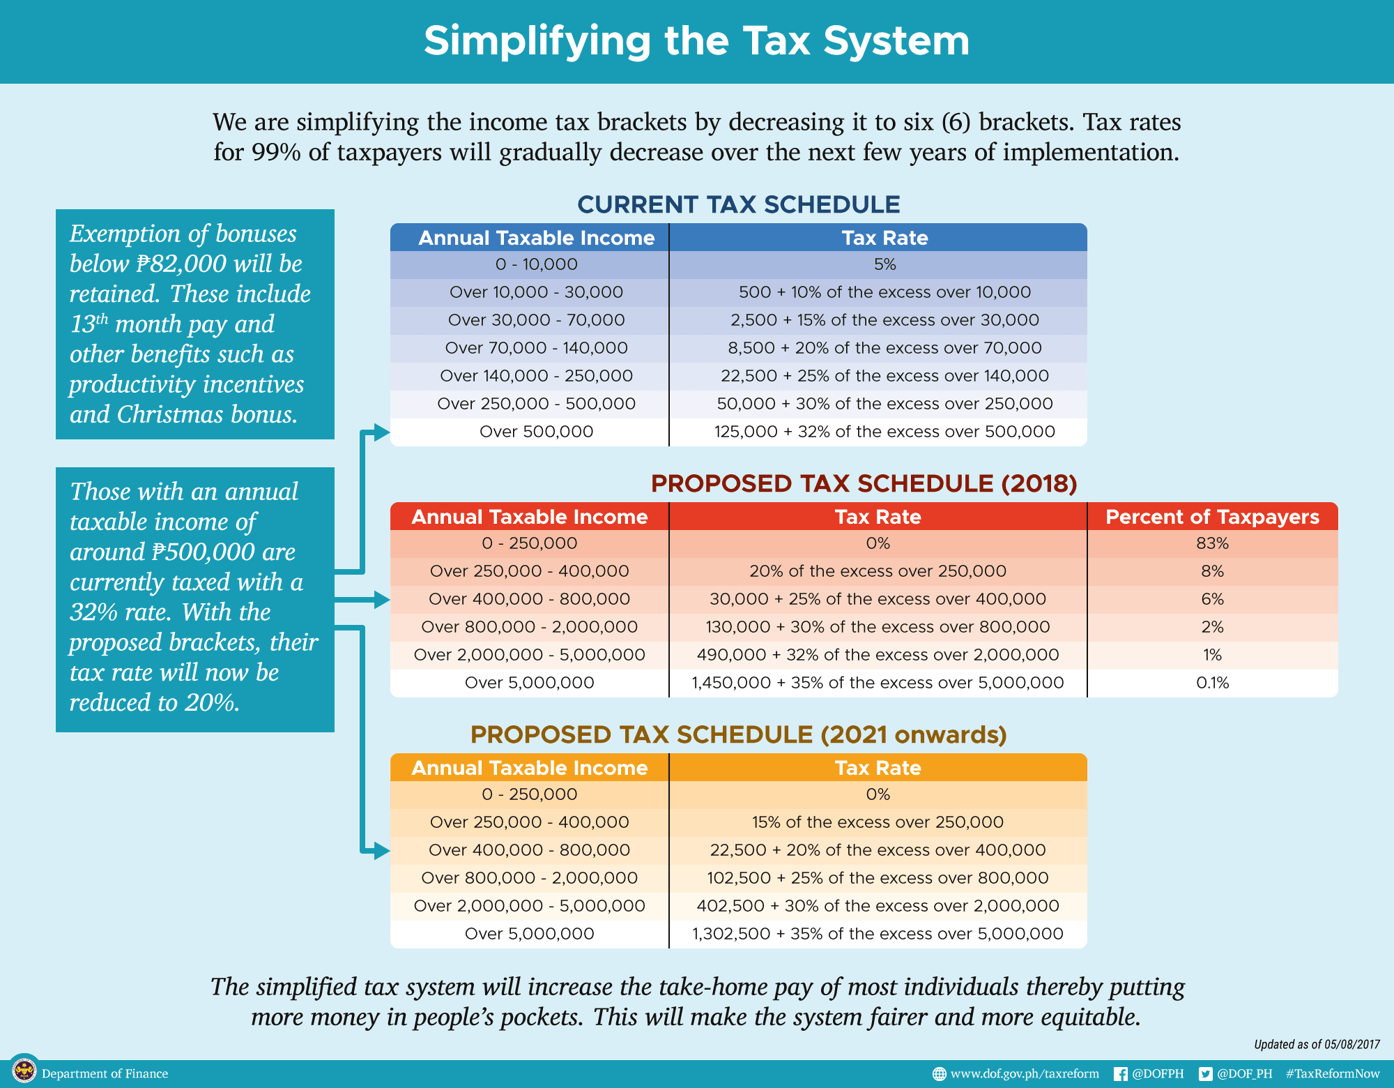 proposed tax schedule